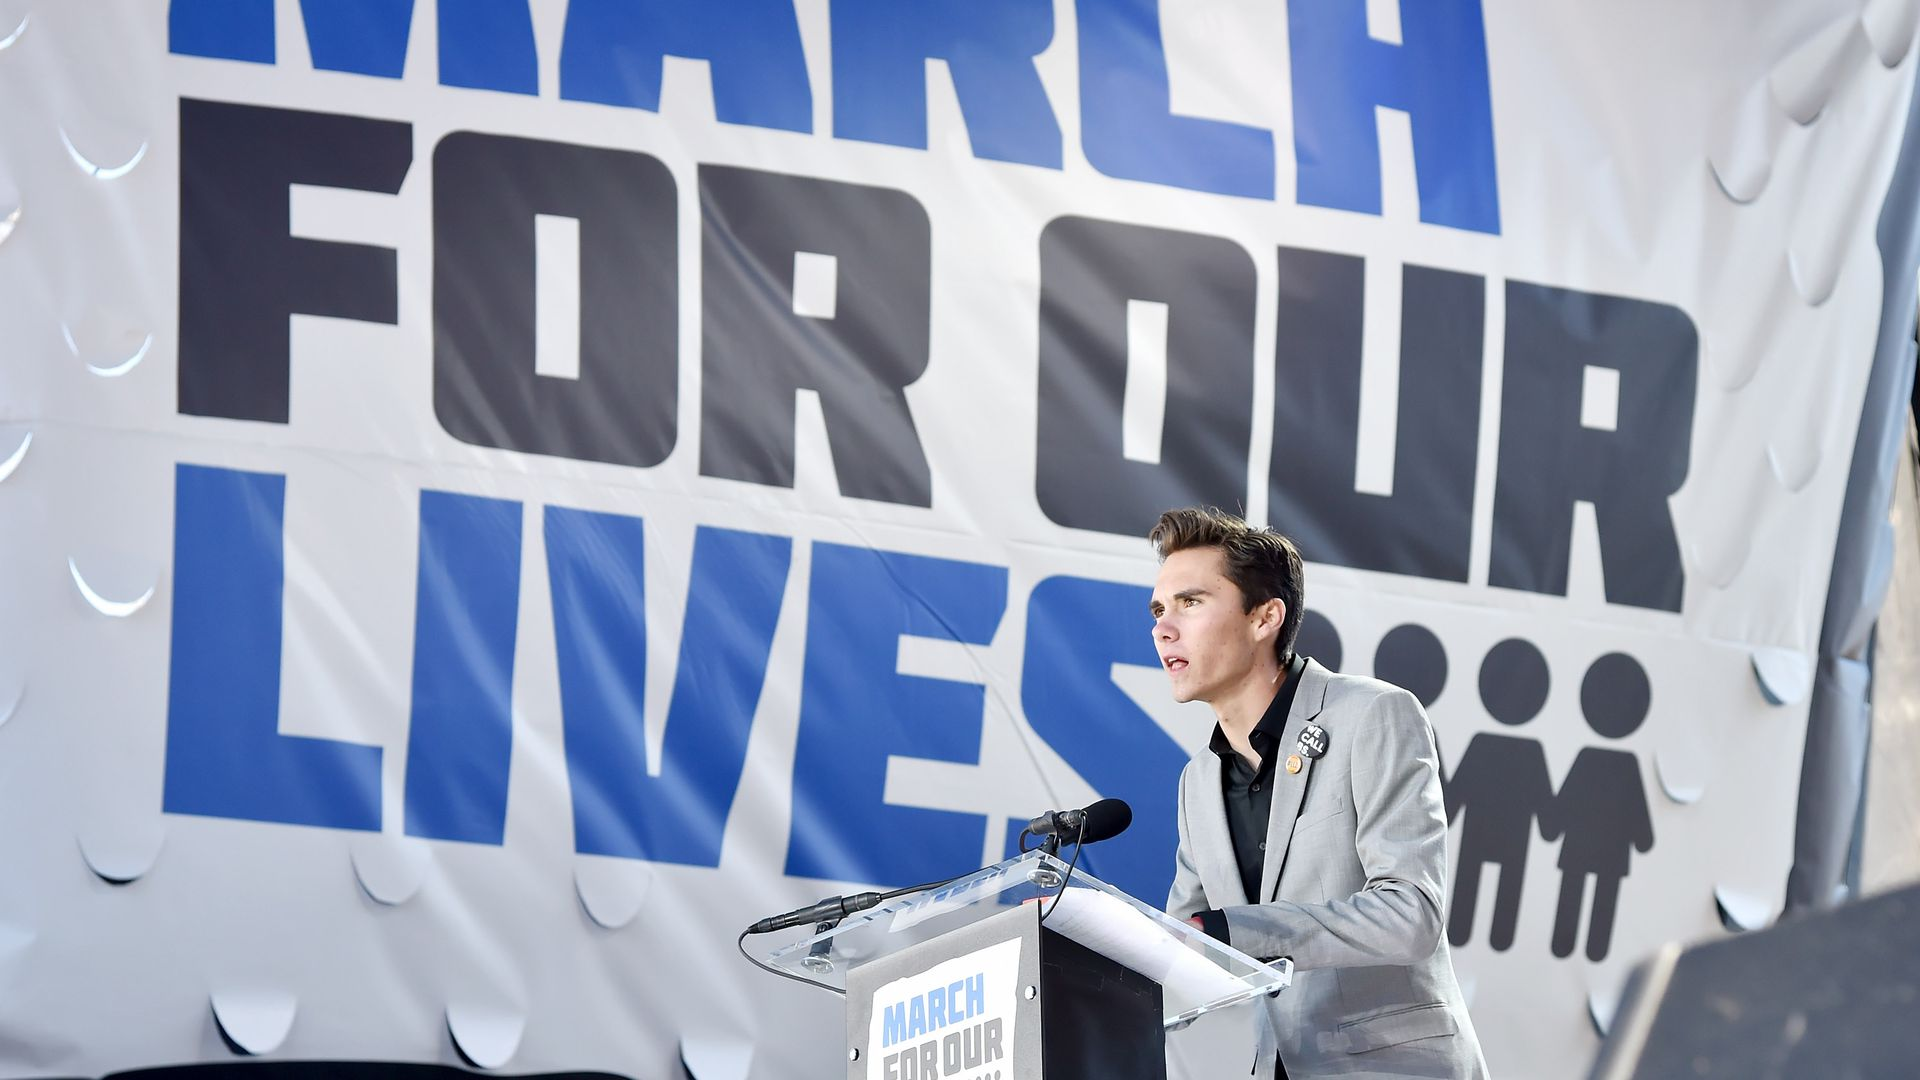 Marjory Stoneman Douglas High School student David Hogg speaks onstage at March For Our Lives on March 24, 2018 in Washington, DC. (Photo by Kevin Mazur/Getty Images for March For Our Lives)